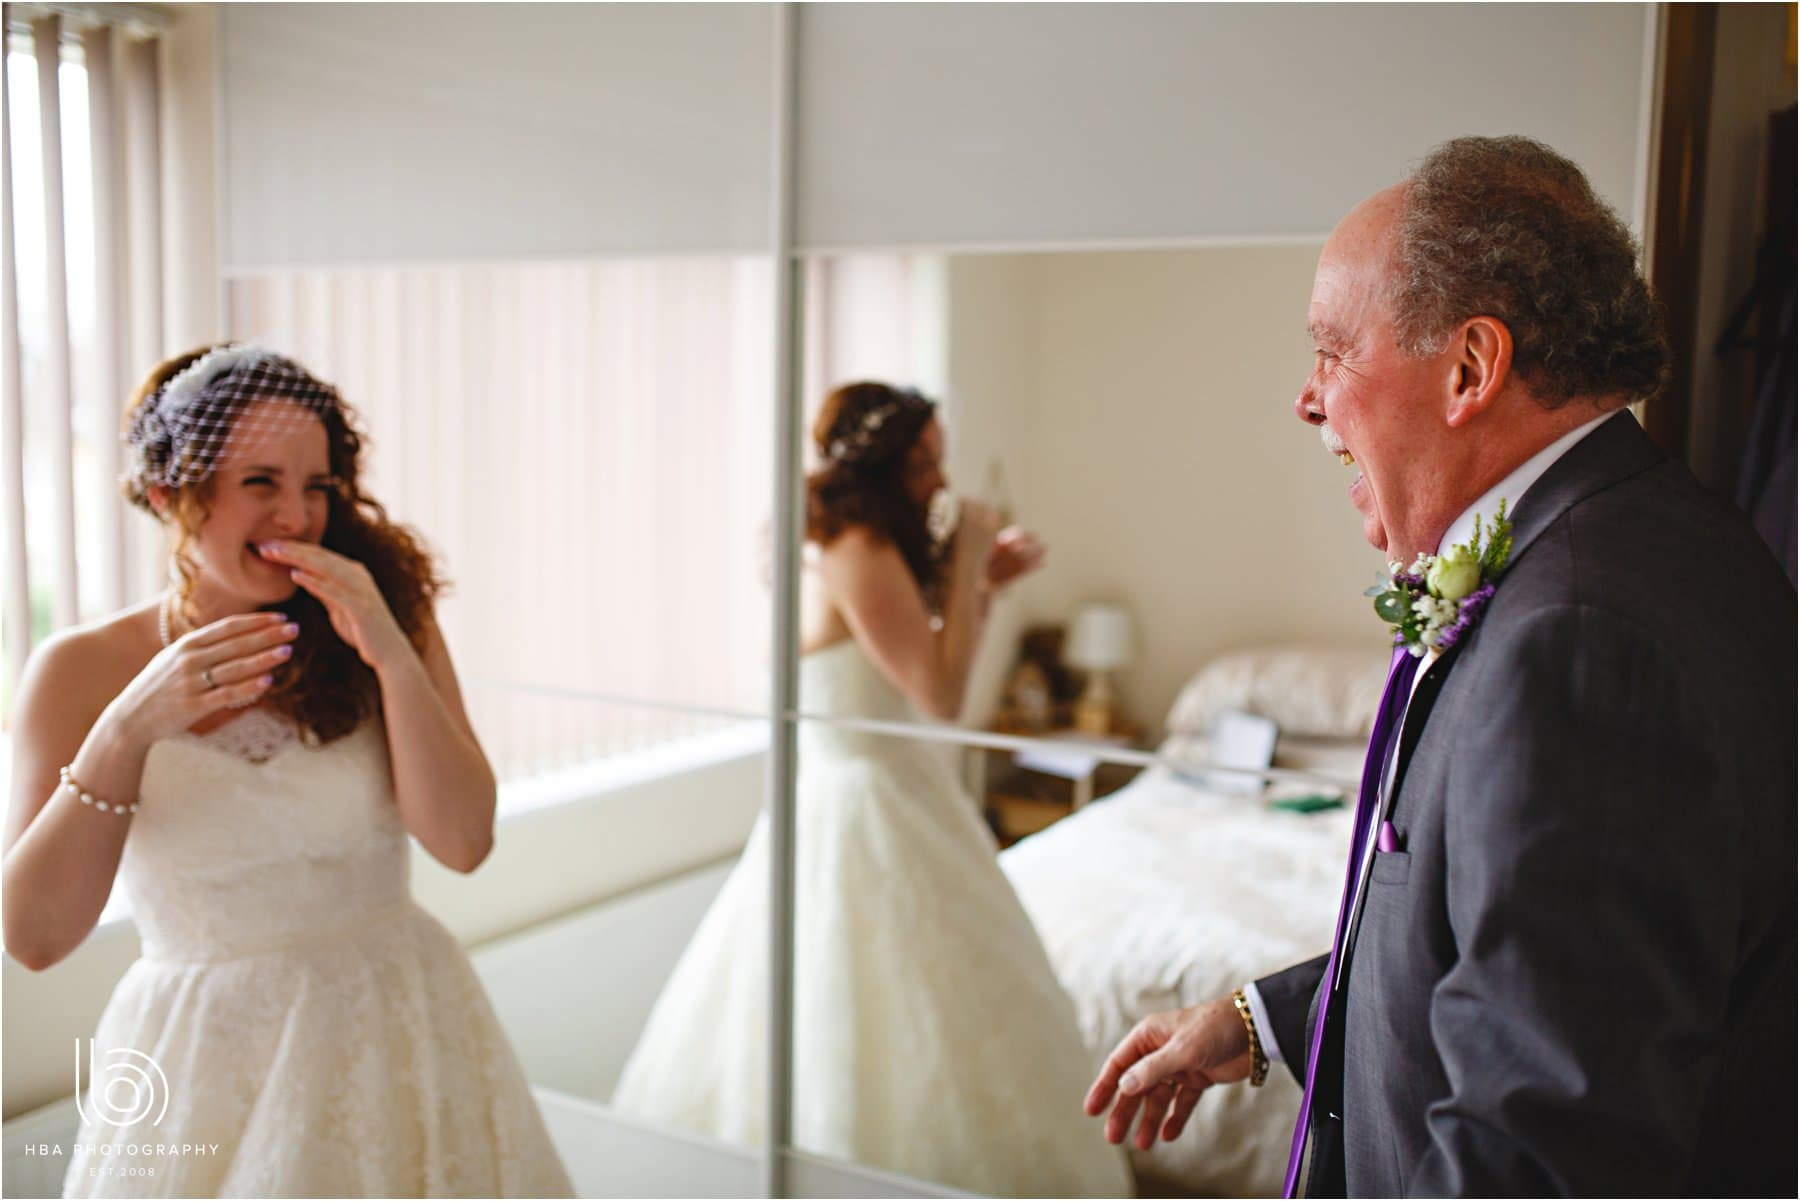 the bride's dad seeing her for the first time